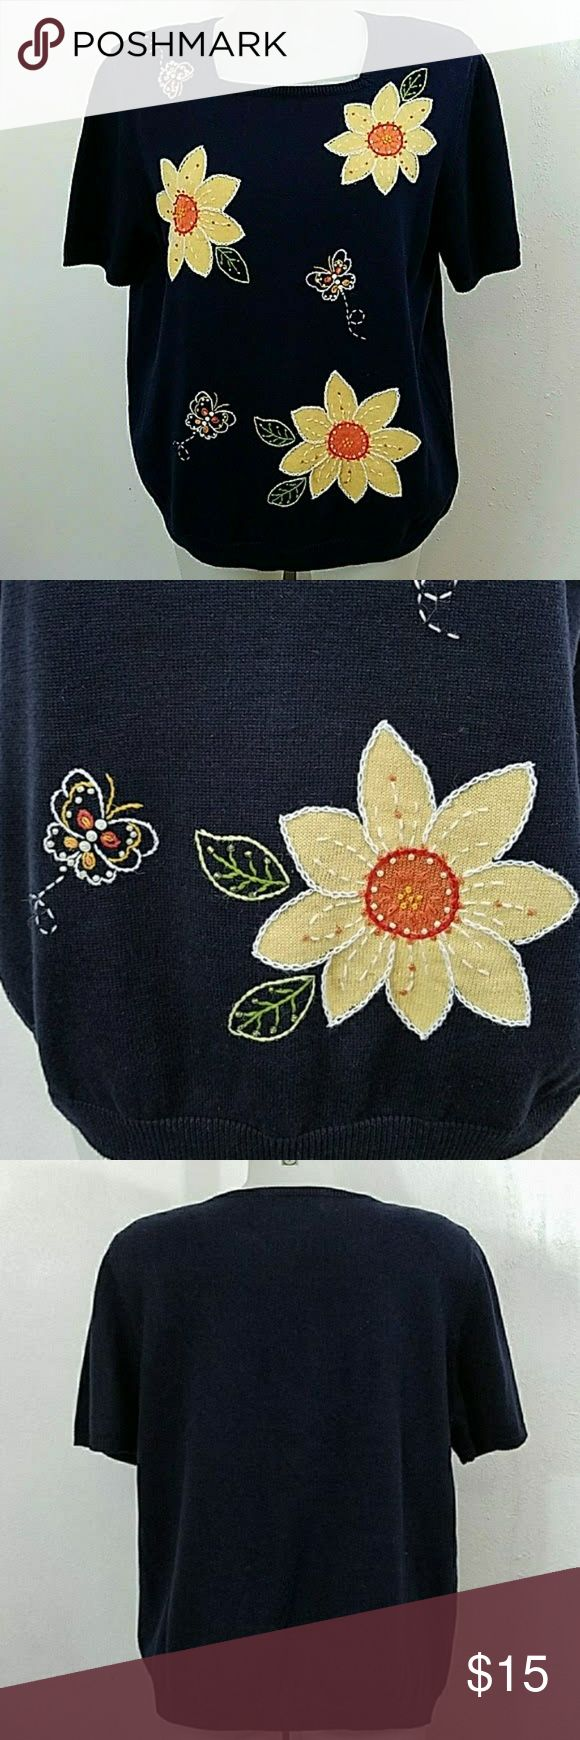 """🐧 Sunflower and Butterfly Sweater Alfred Dunner Sunflower and Butterfly Sweater by Alfred Dunner. In great condition. Size large. Bust 42"""" Length 26"""" Alfred Dunner Sweaters"""